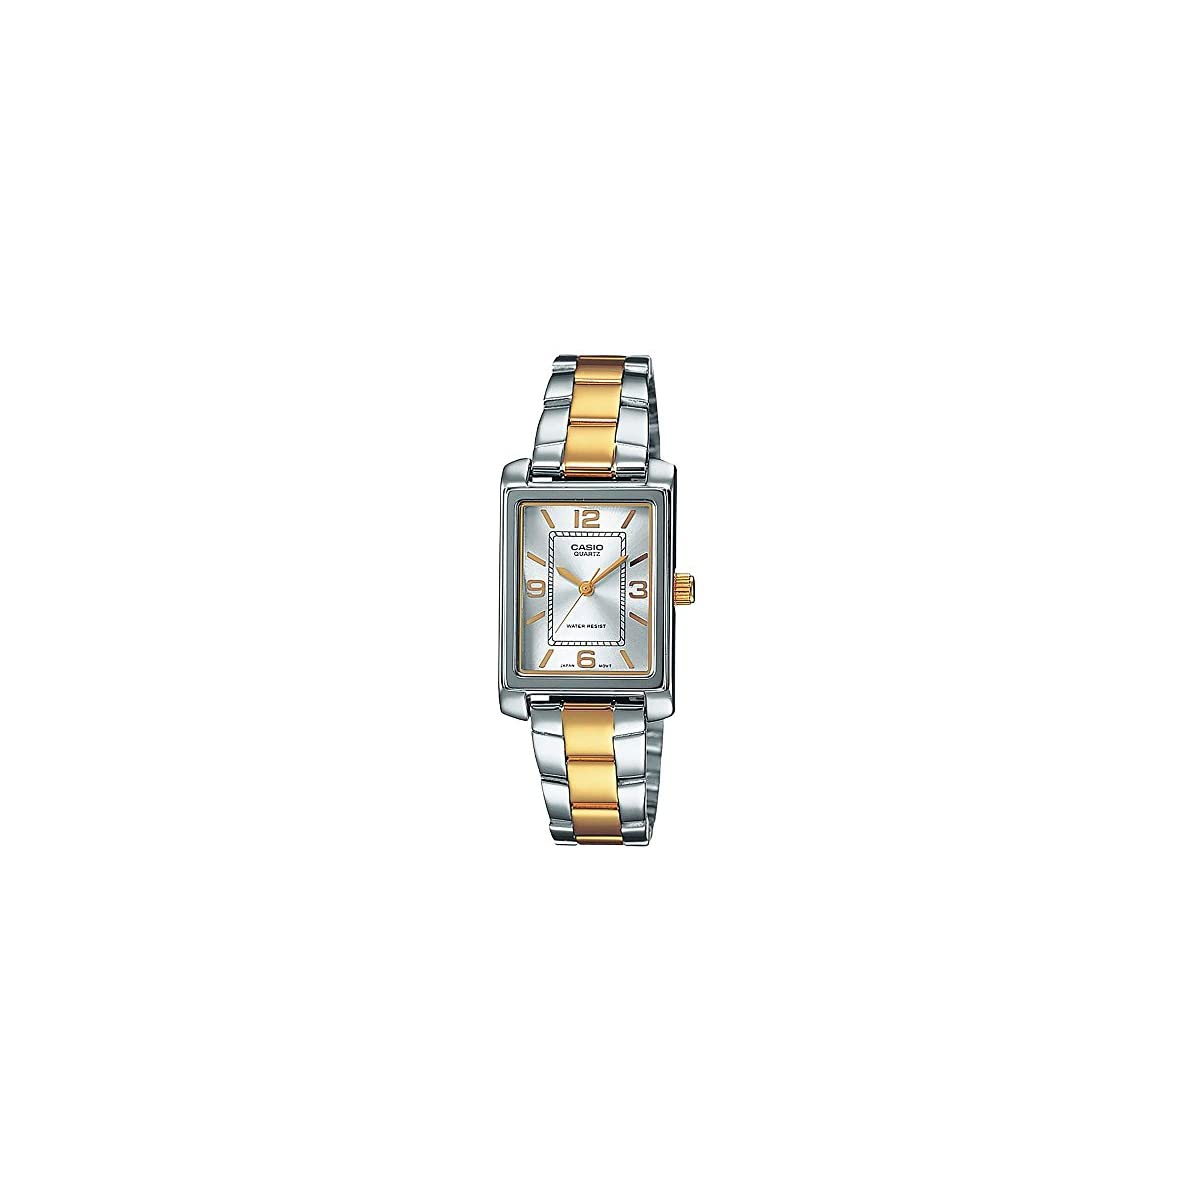 51o6ouP2yGL. SS1200  - Casio Collection LTP-1234PSG-7A, Reloj para Mujer, Bicolor